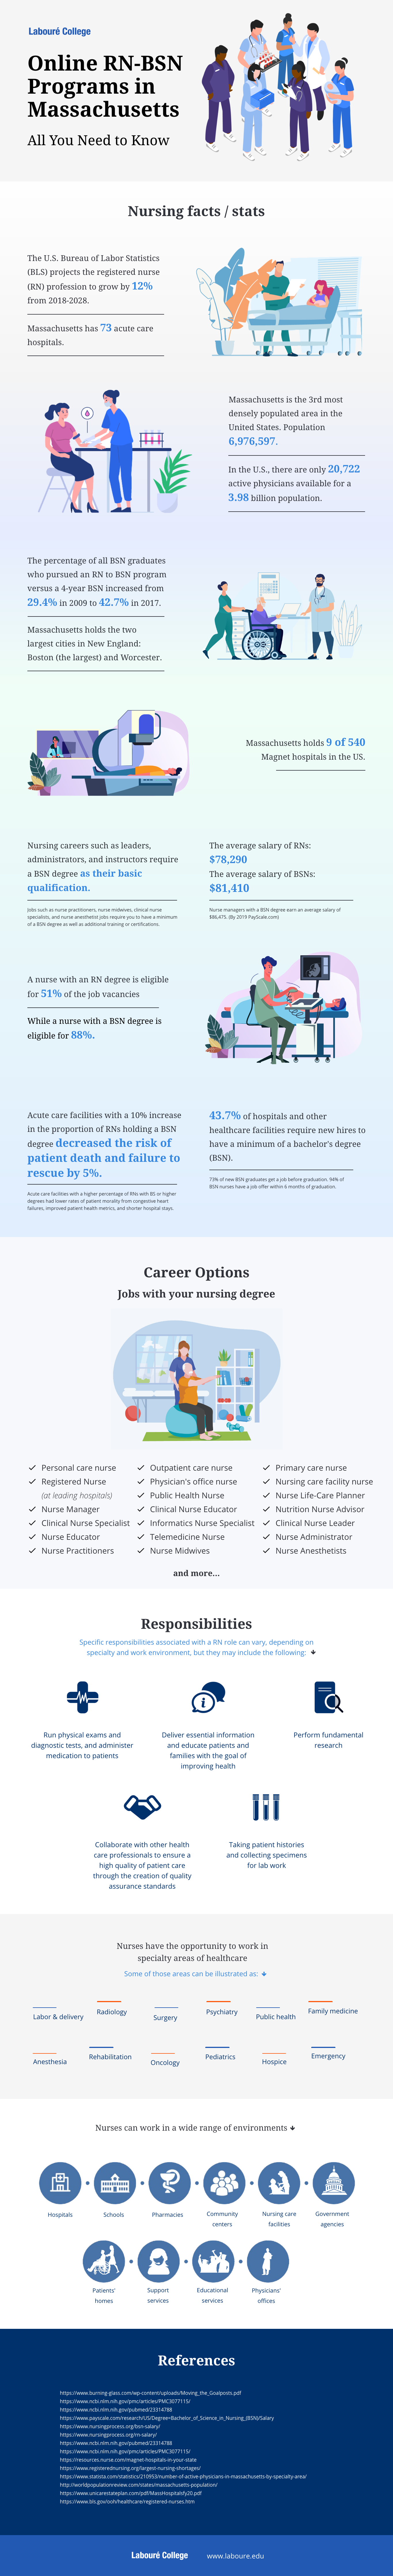 11 RN to BSN Nursing Statistics You Need to Know in 2020 (Infographic)